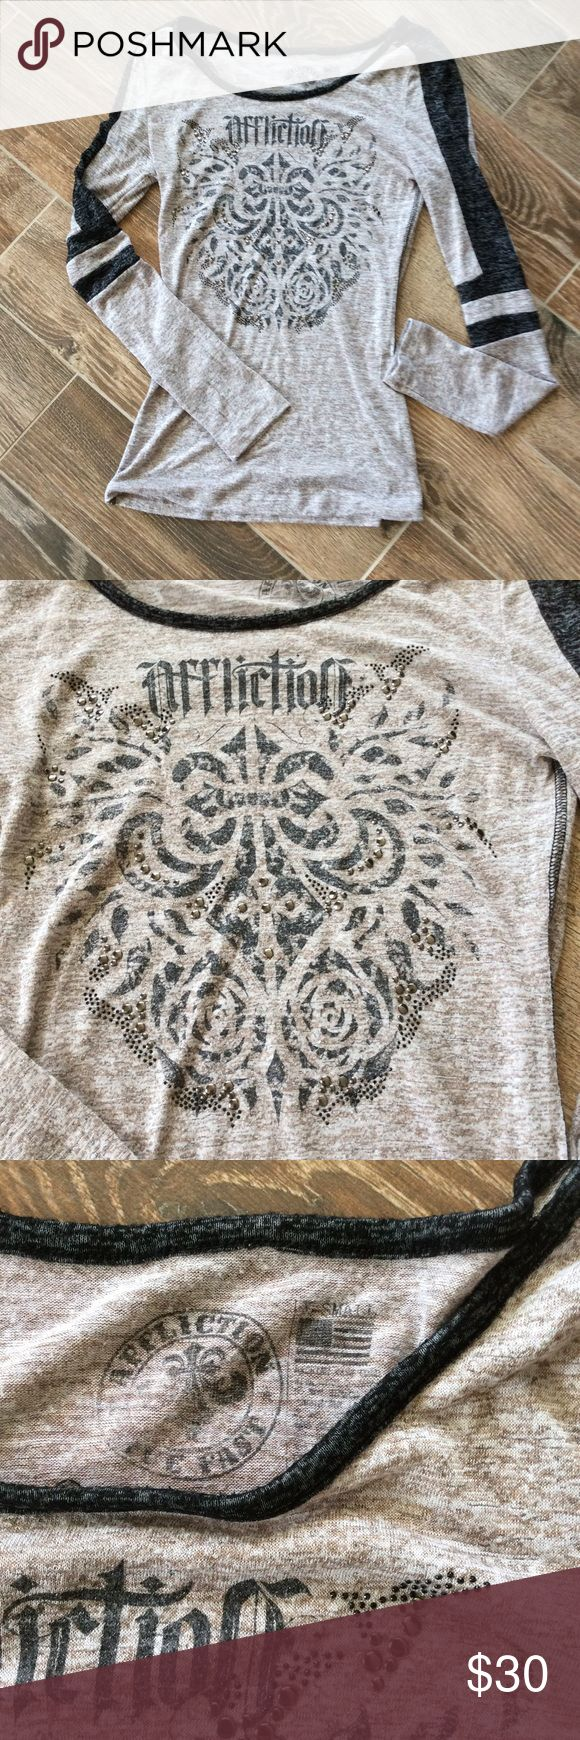 Affliction burn out long sleeve tee xs A heathered burn out Affliction long sleeve tee in size xs. Good condition with studs on the front. Brown and black. Feel free to ask any questions! Affliction Tops Tees - Long Sleeve